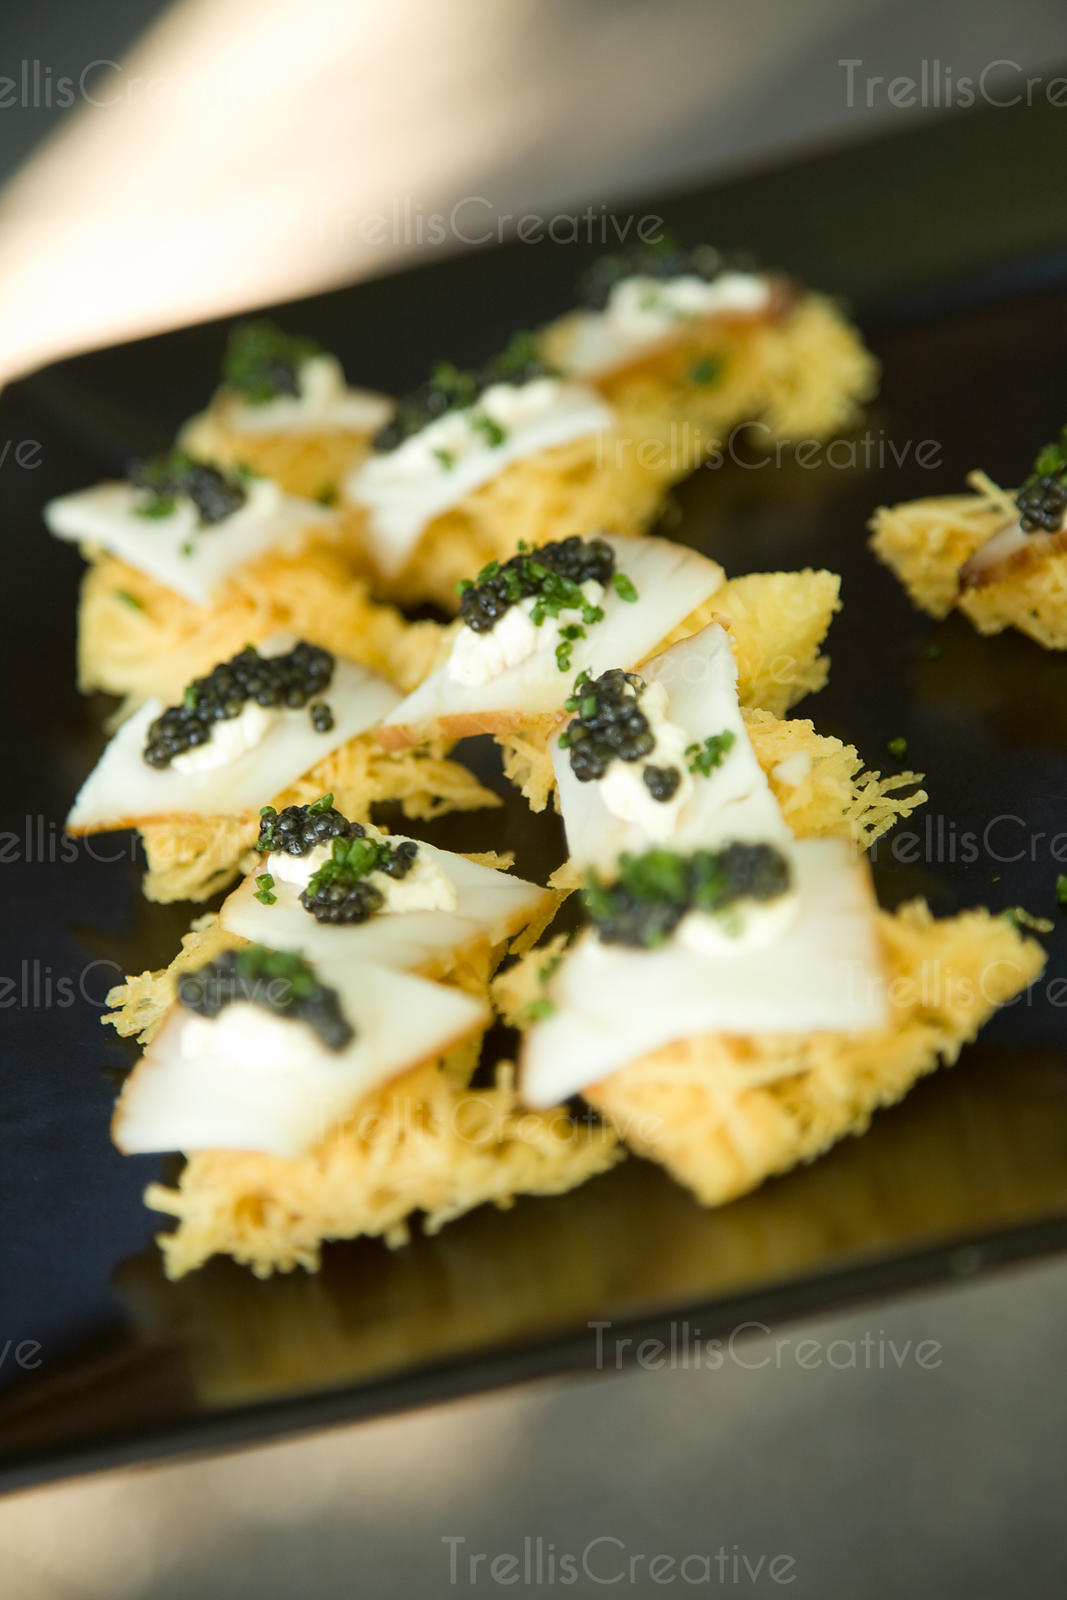 A platter of fried appetizers with caviar